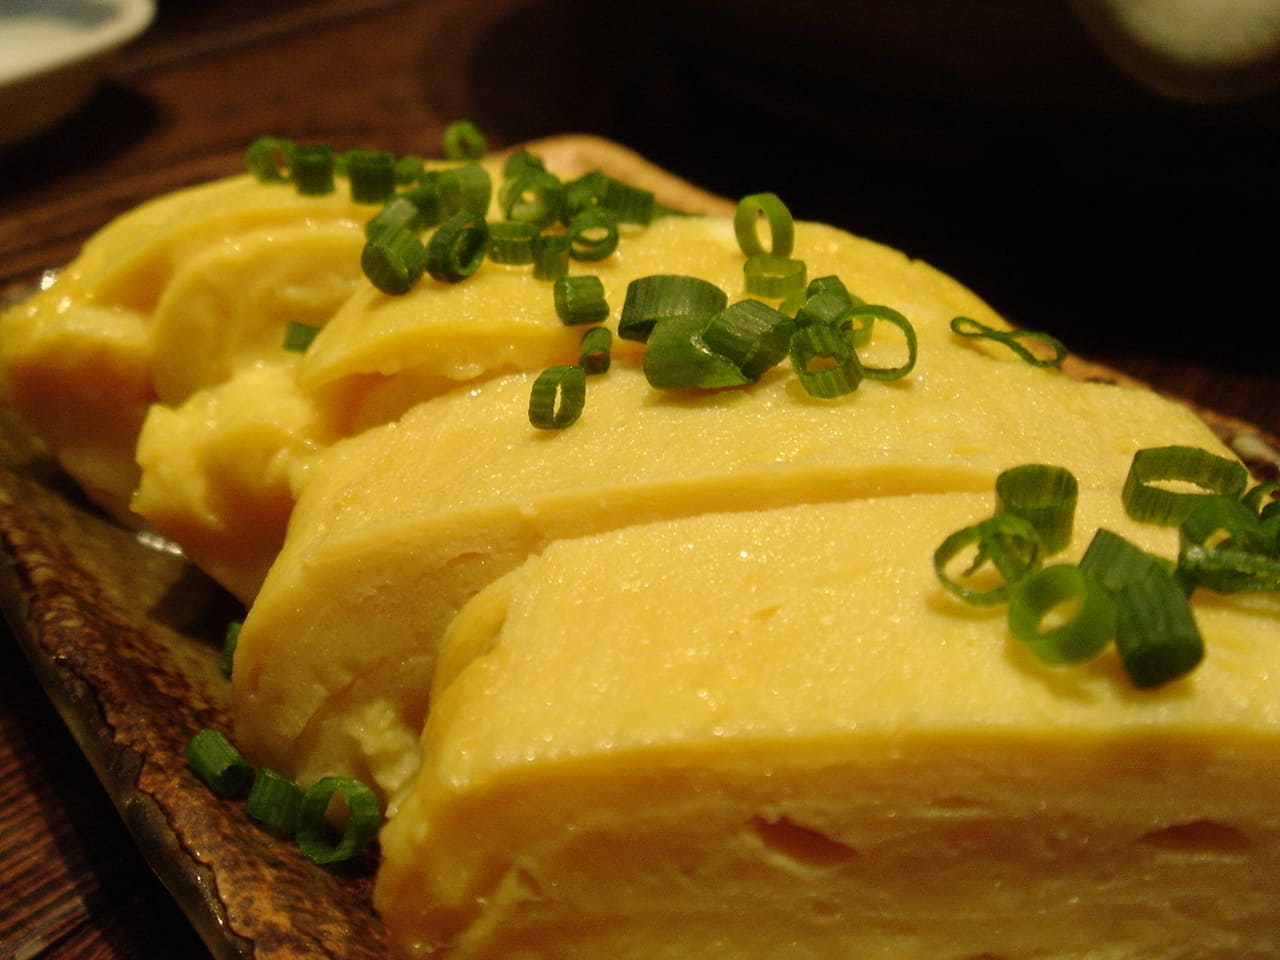 Rolled thin omelet including dashi